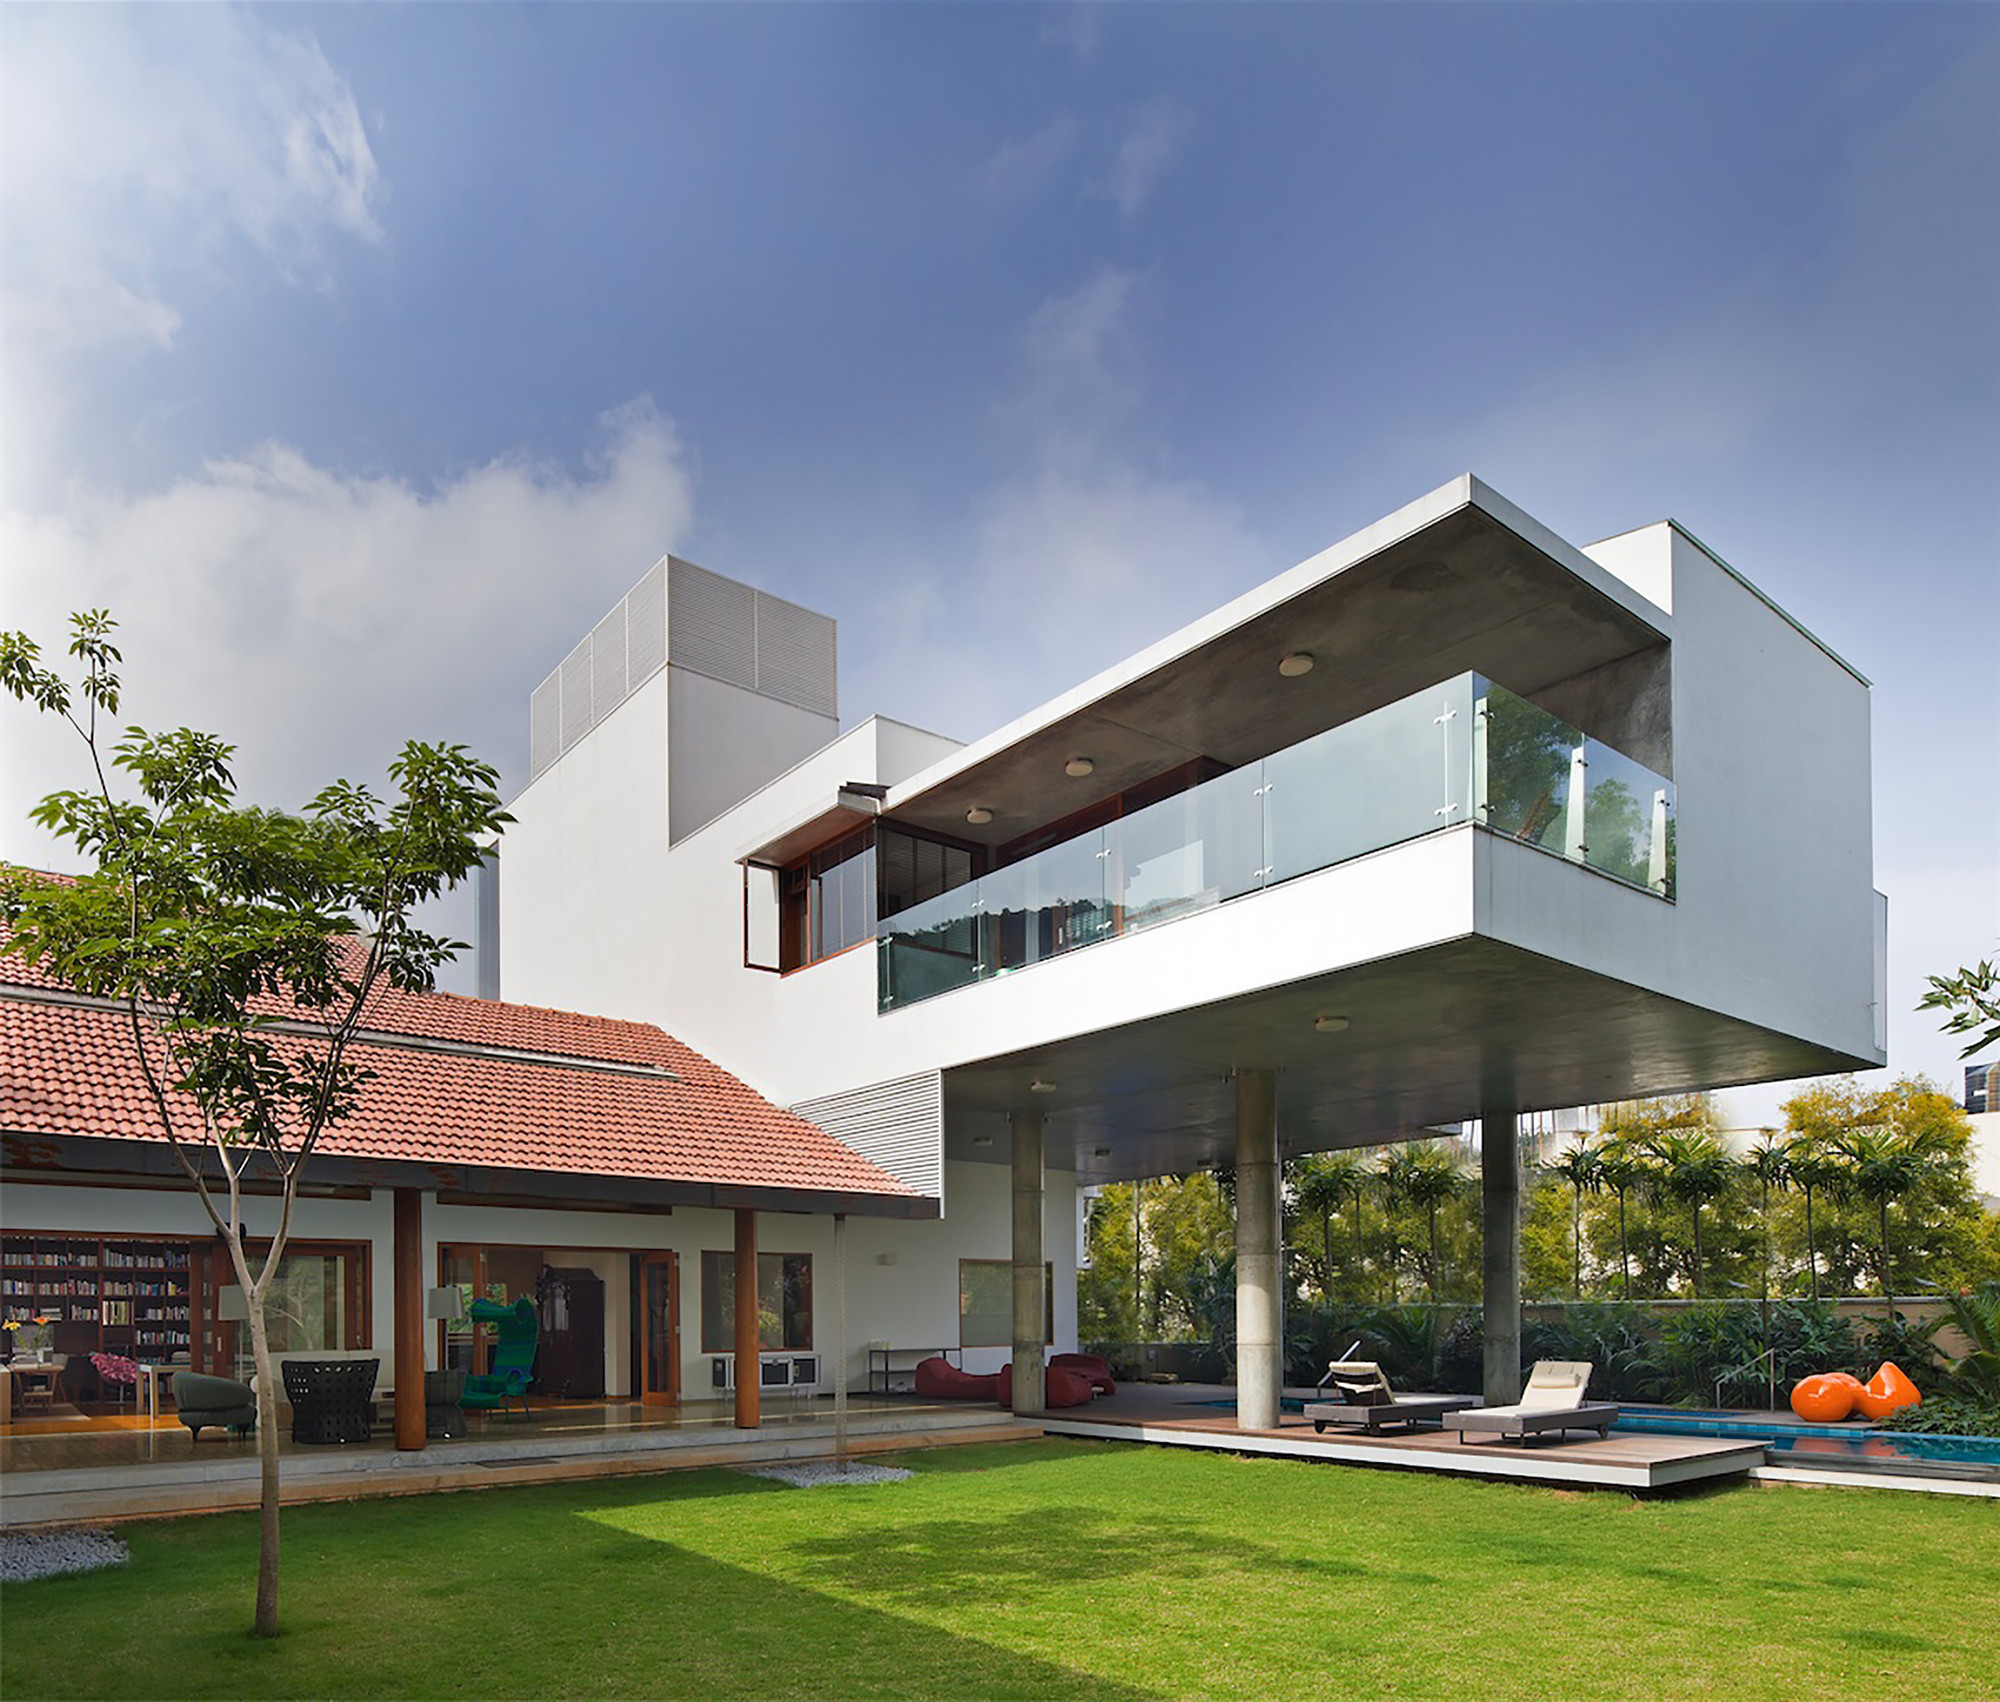 The Library House  / Khosla Associates, © Shamanth Patil J.